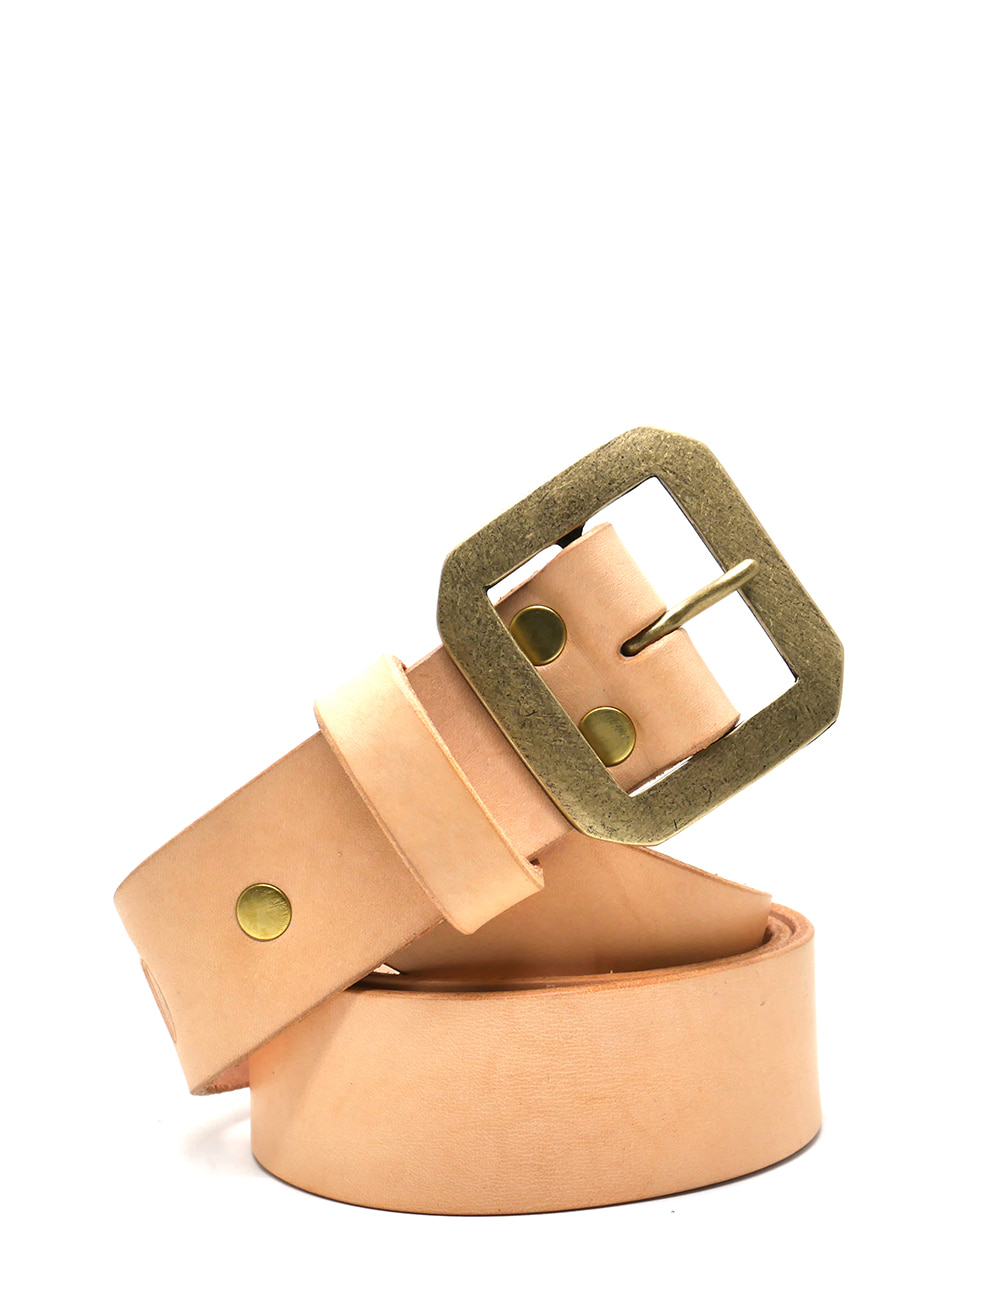 [LEATHER SMITH]  compulsory single belt (beige&gold)